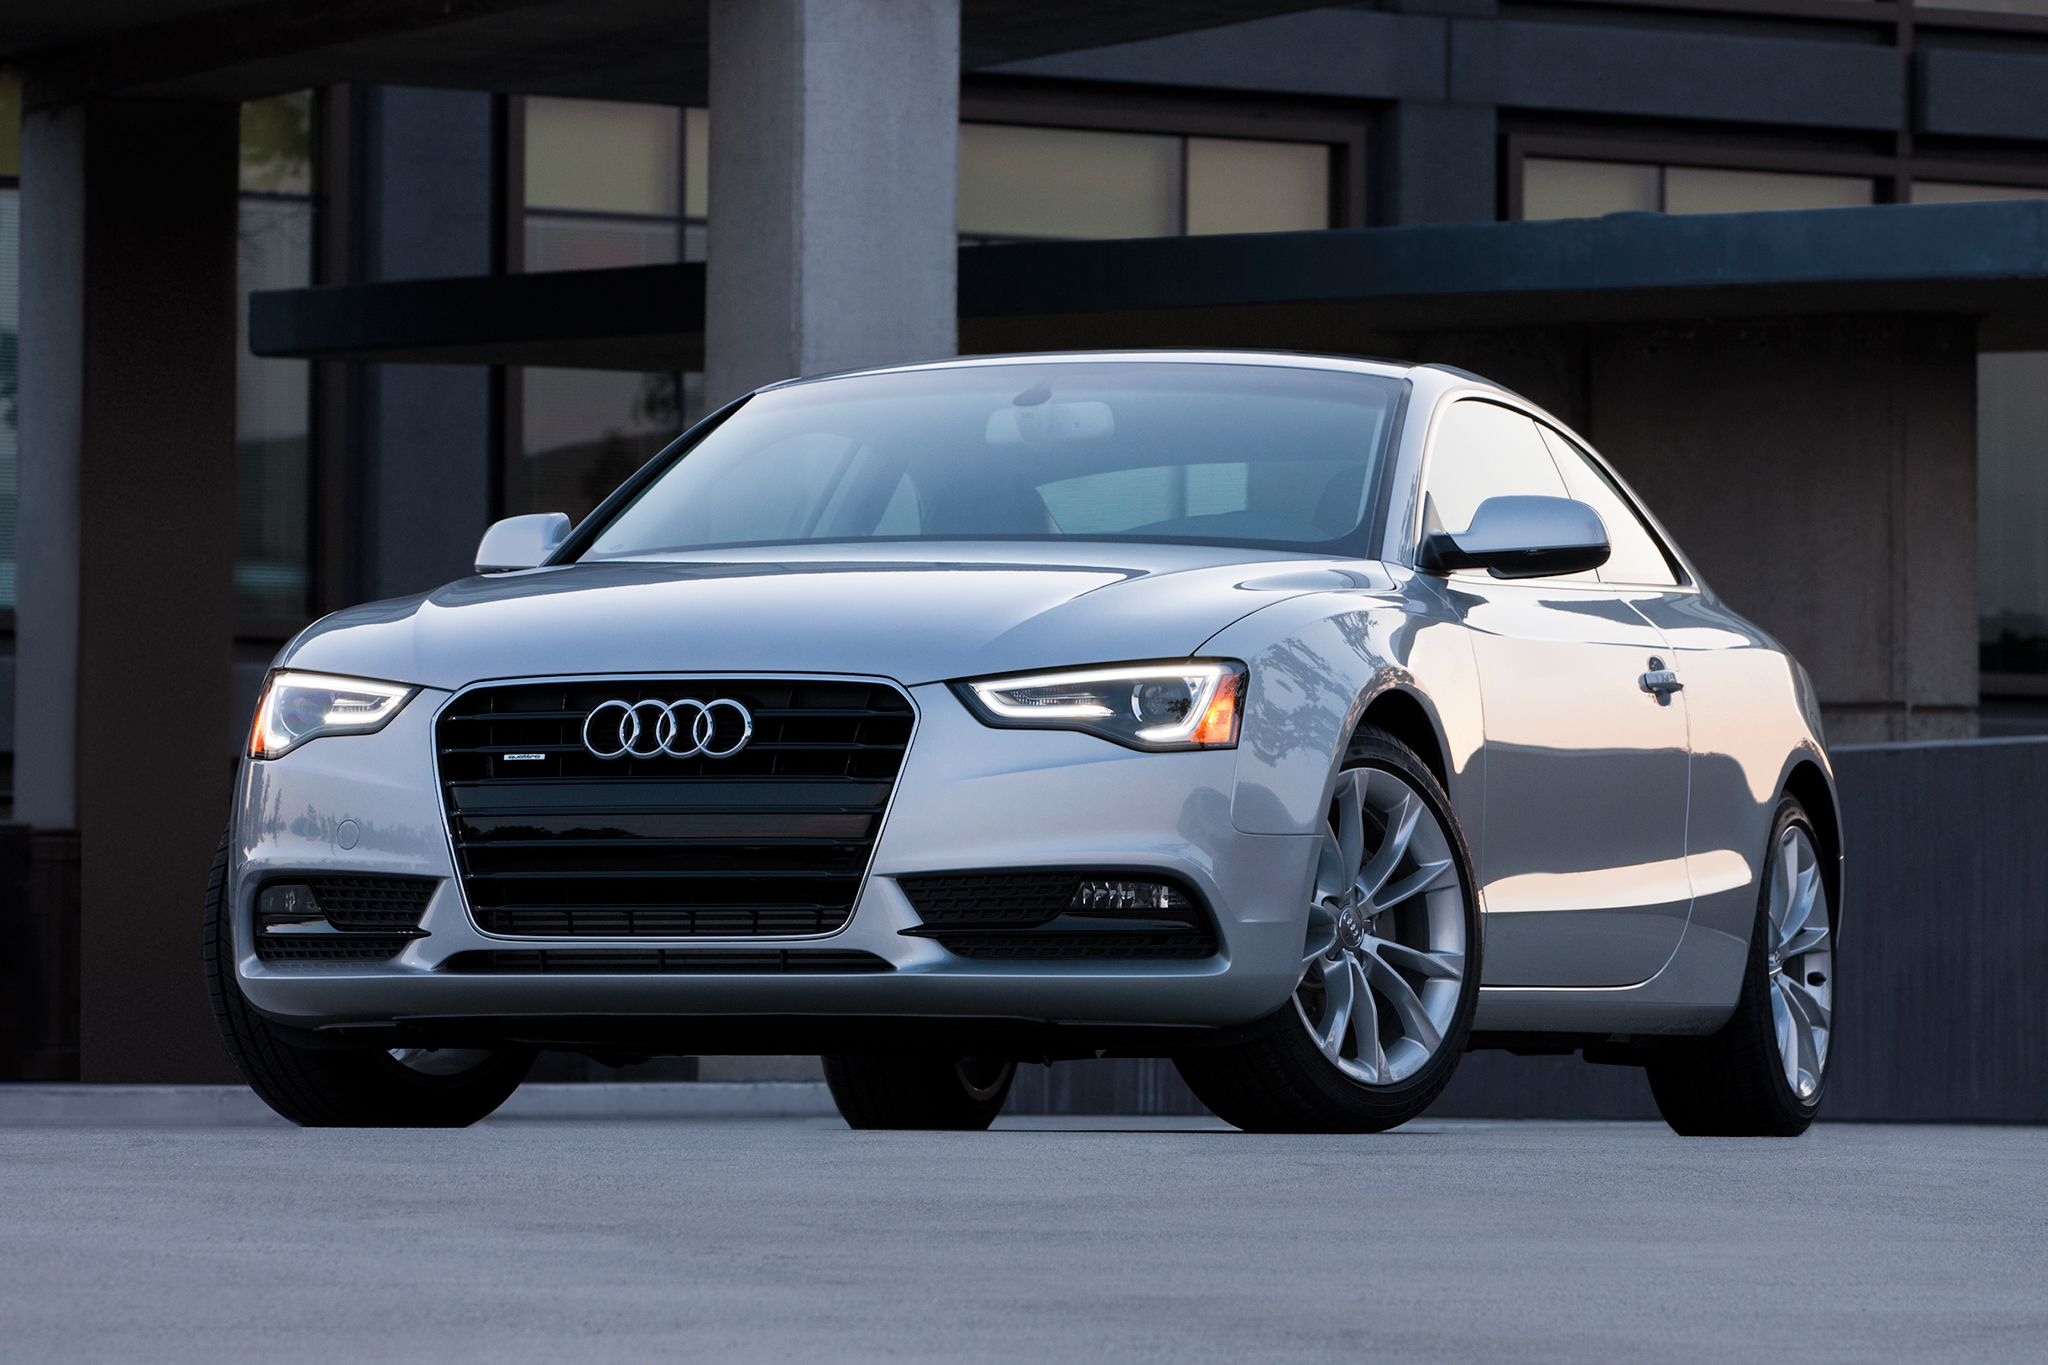 2012 audi a5 s line wallpaper audi wallpapers pinterest audi a5 audi and motor car